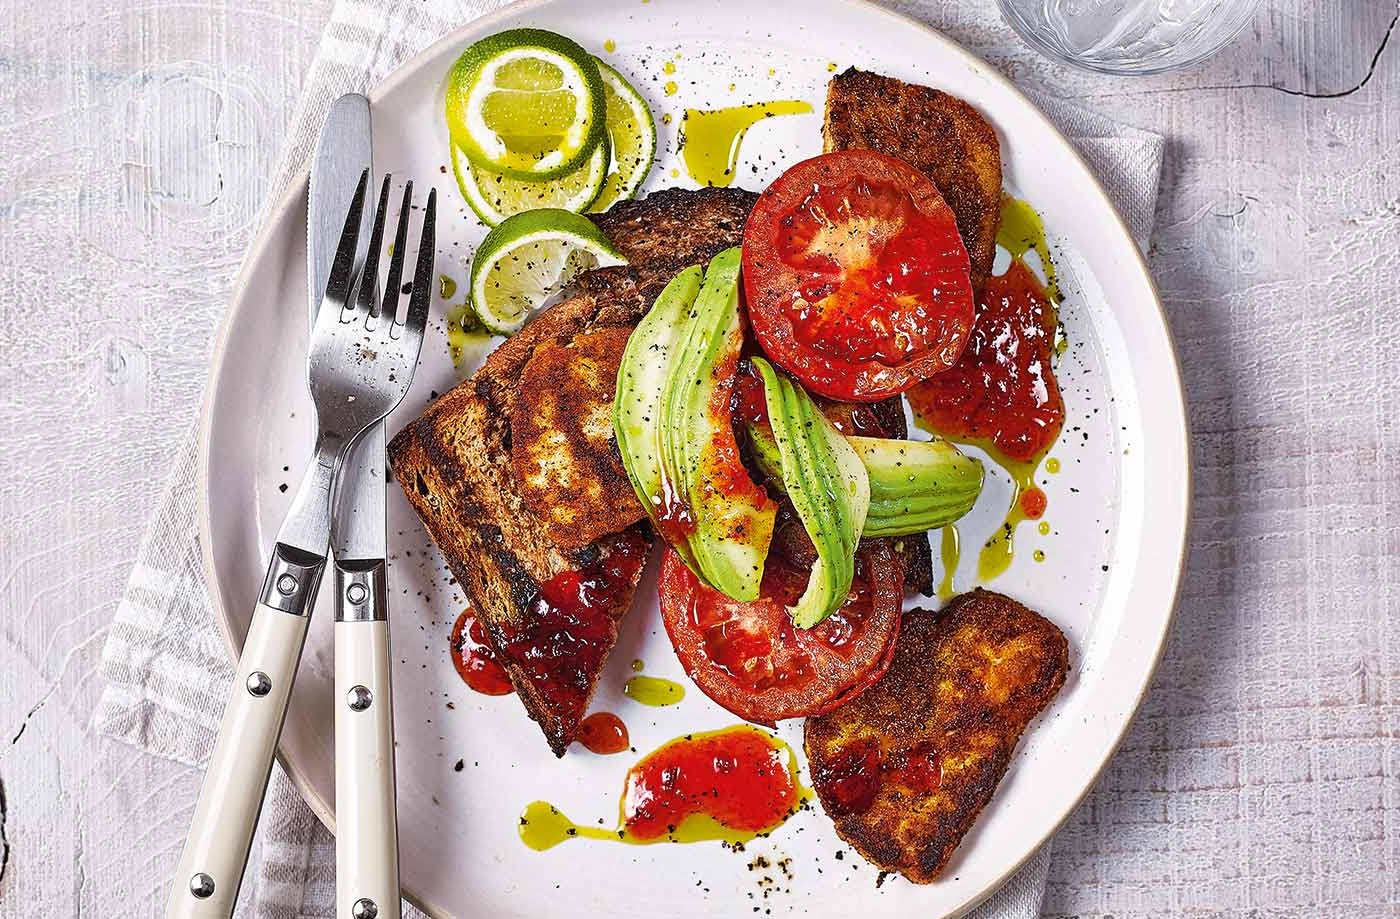 Spiced halloumi fry-up recipe